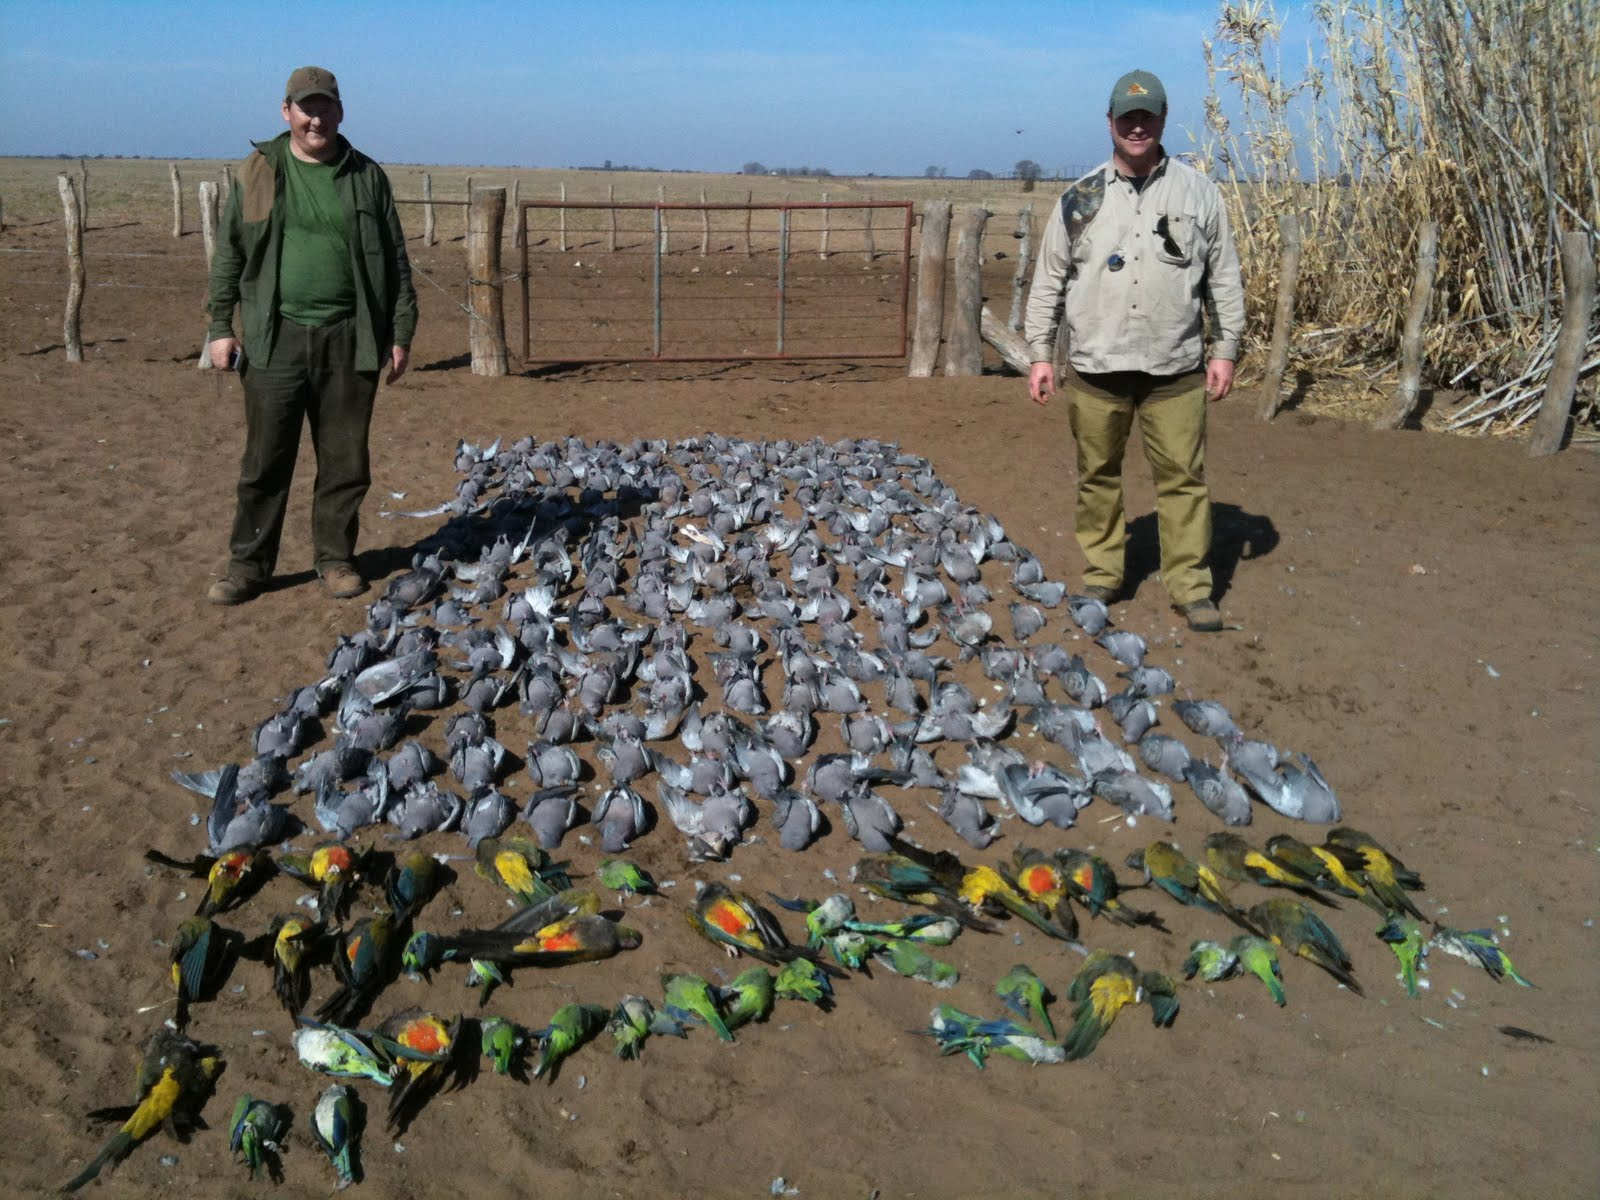 Argentina Duck Hunting Argentina Dove Hunting August 2010